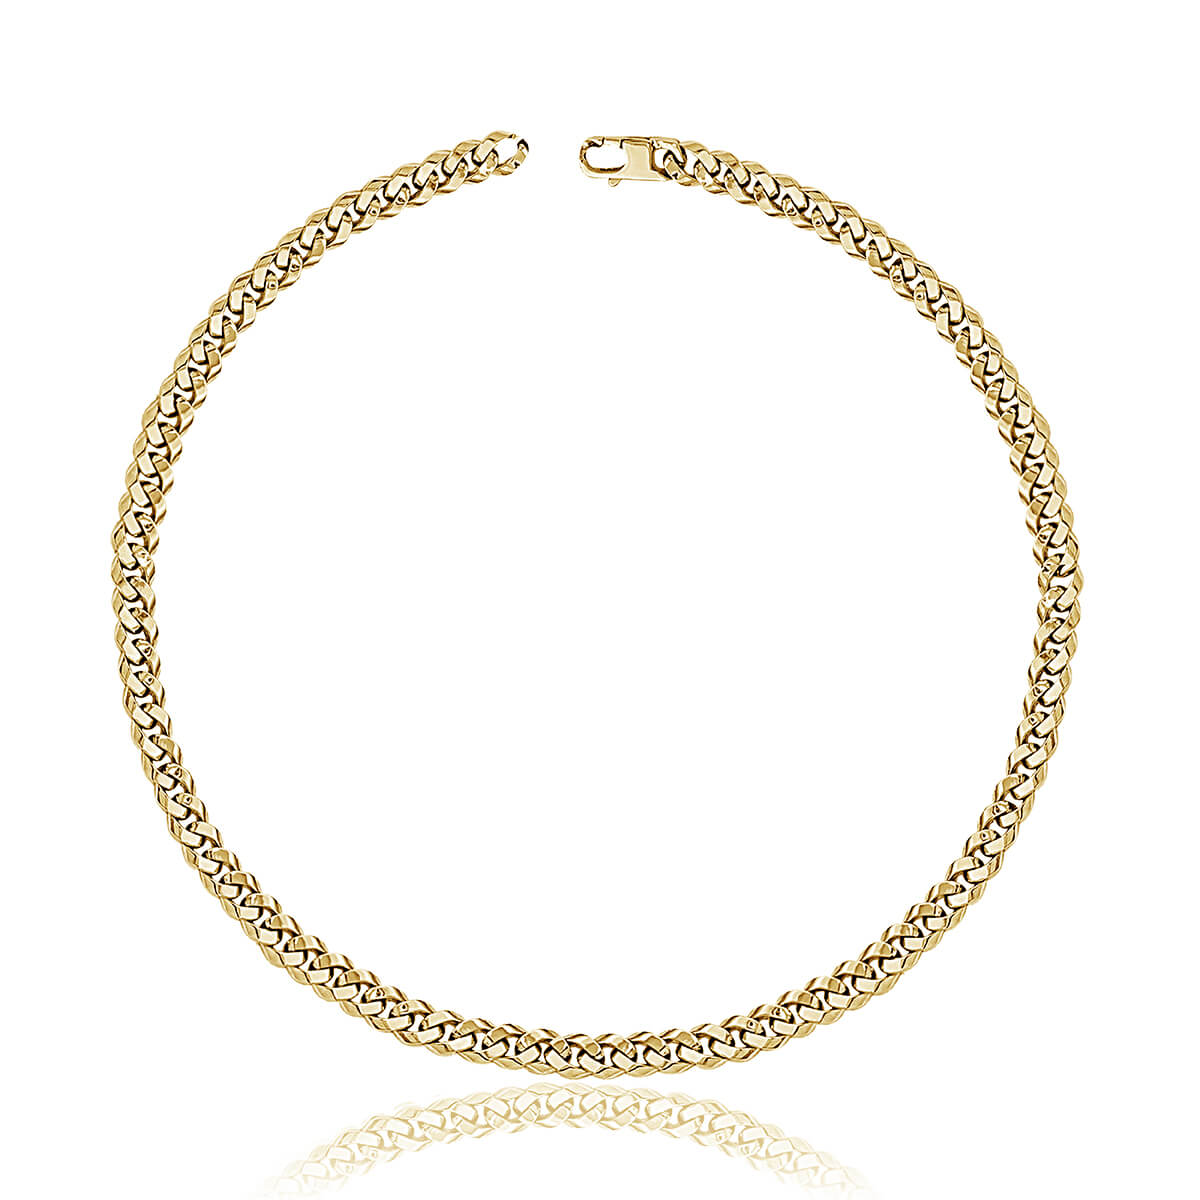 Monaco Chain Necklace